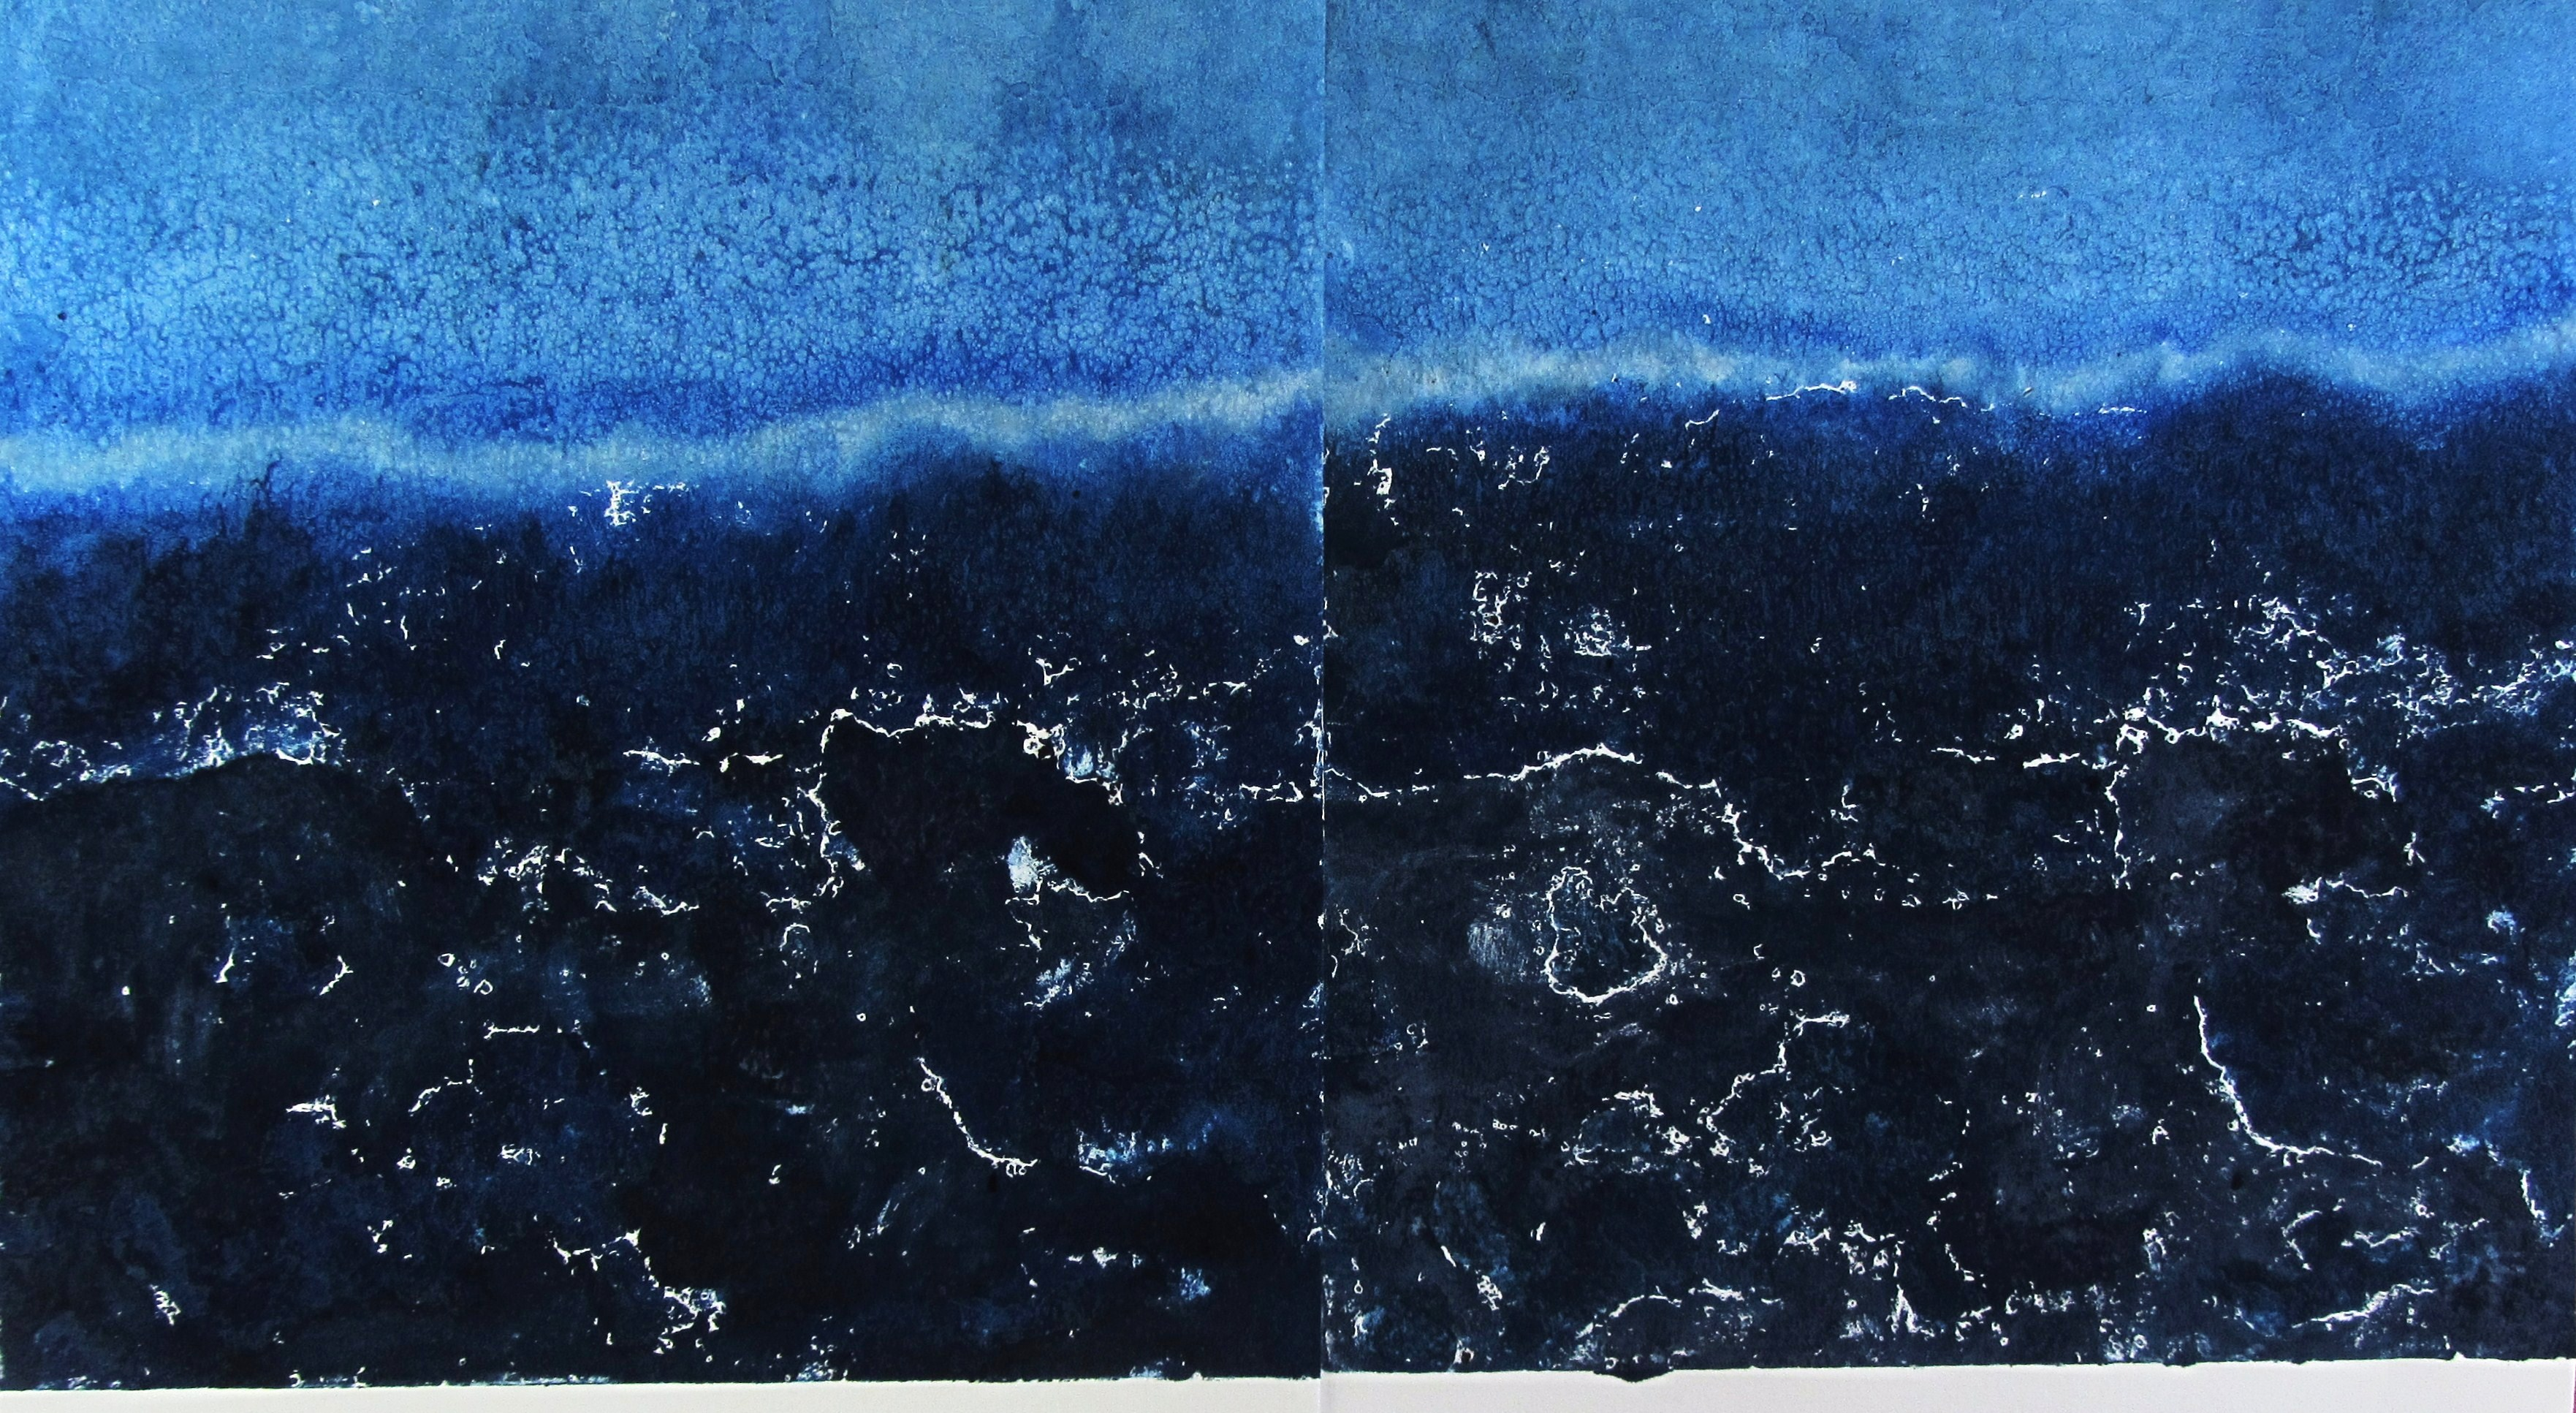 Tidelines 62 x 112 cm Saltwater Etching